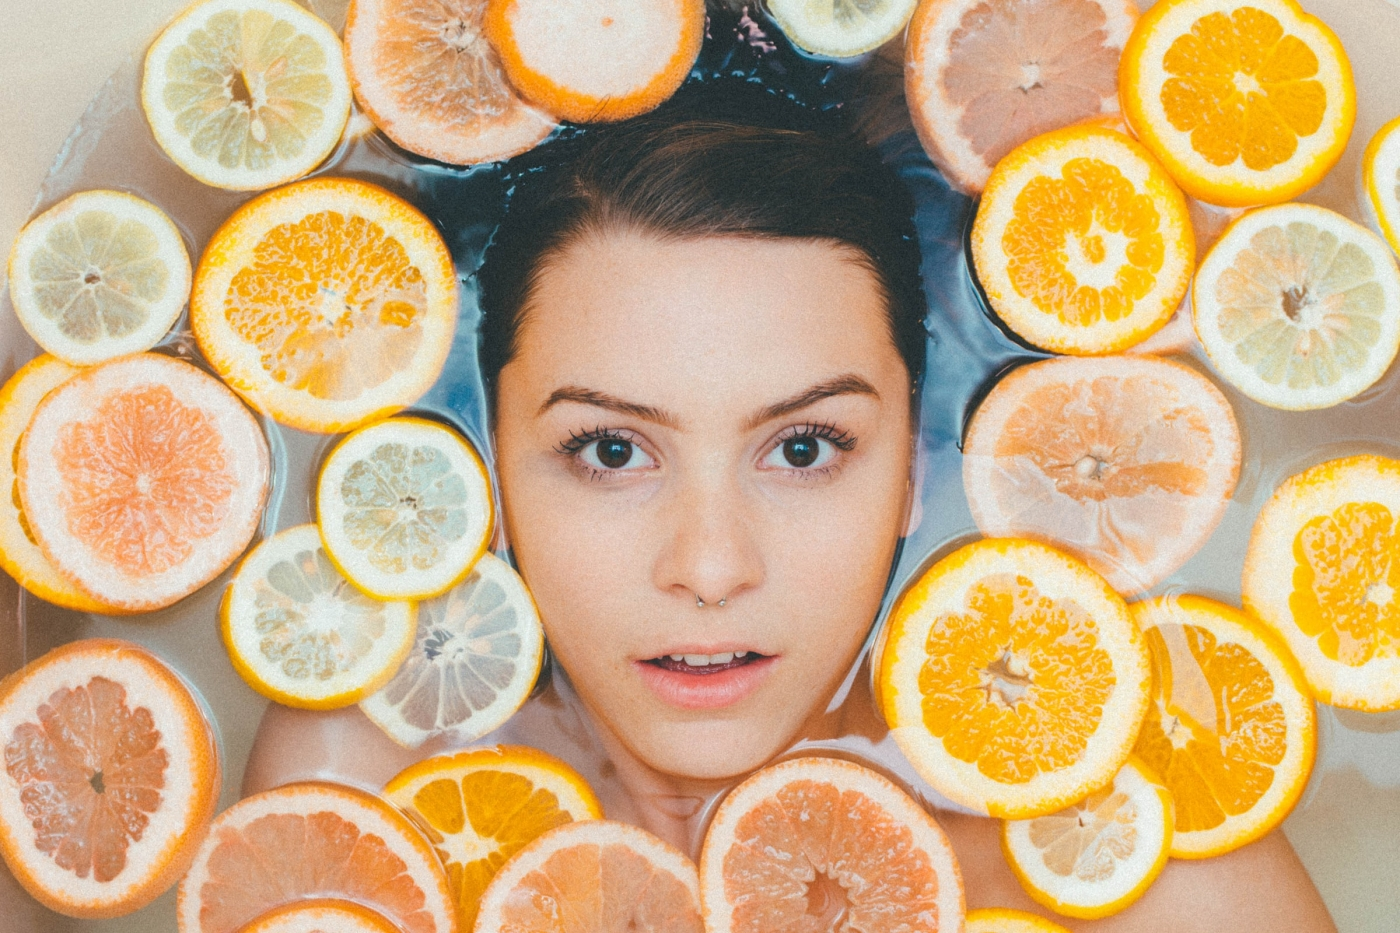 9 skincare tips to make your skin glow for life